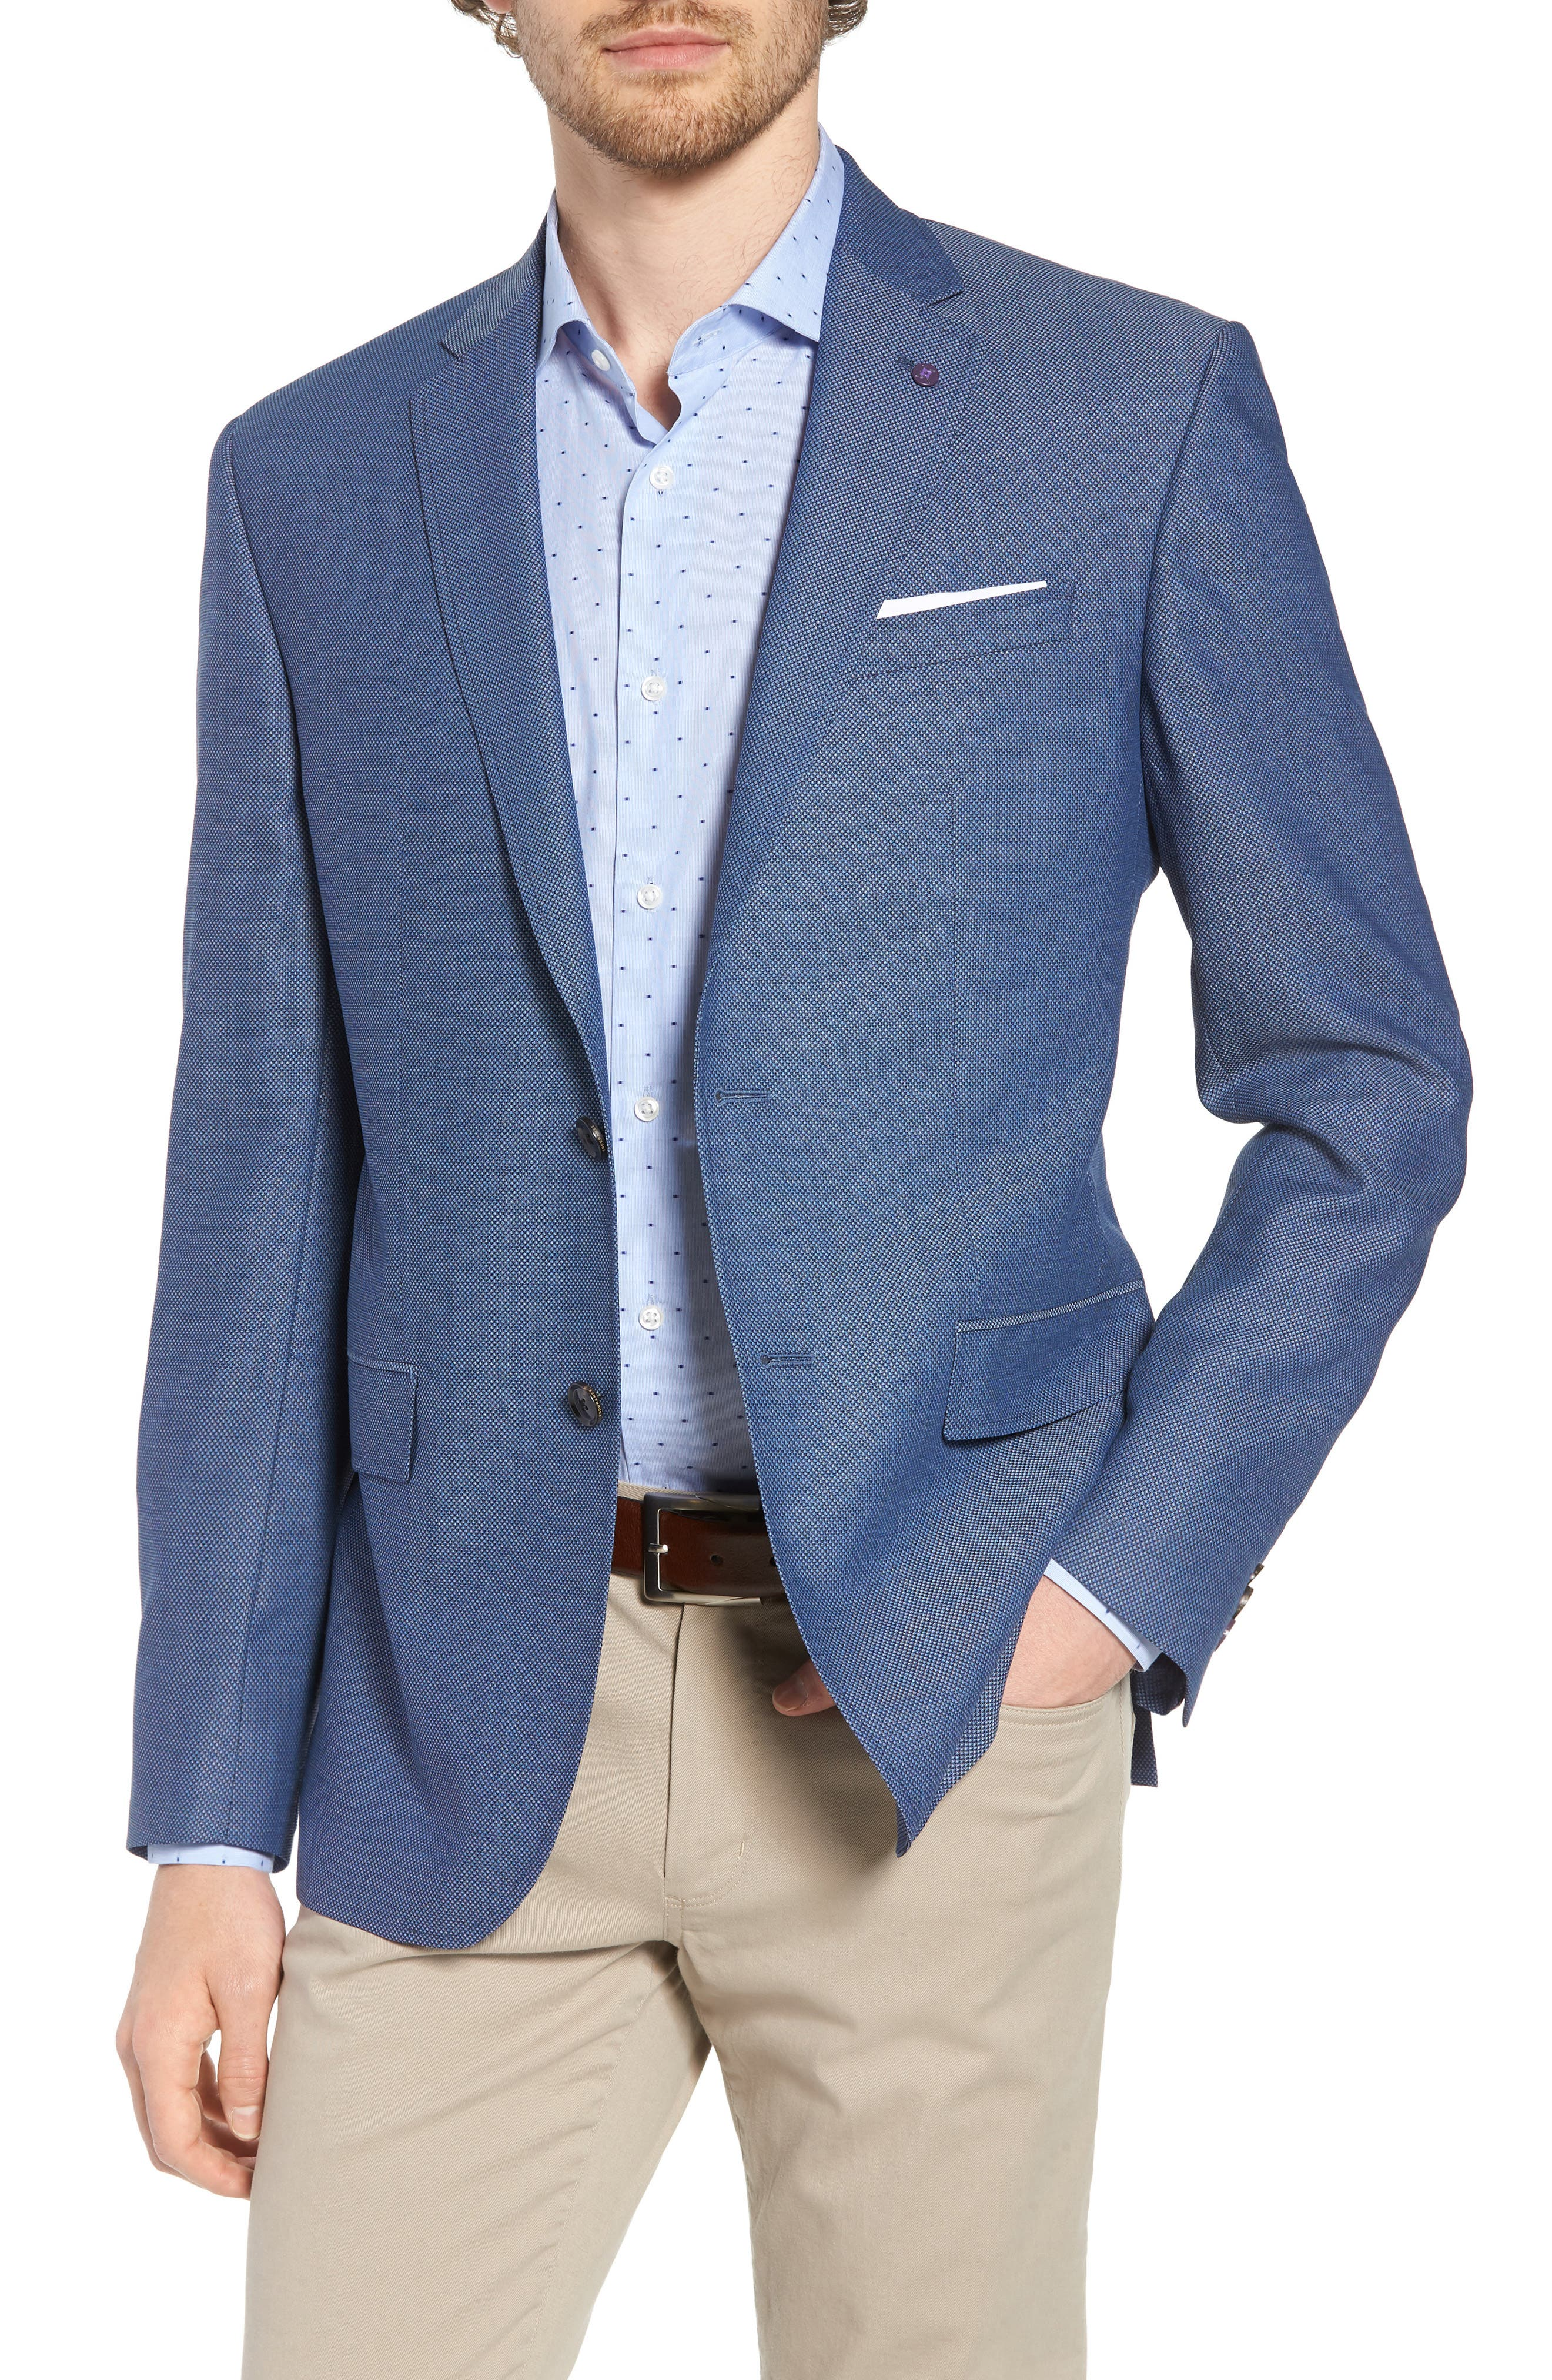 Jay Trim Fit Wool Blazer,                             Main thumbnail 1, color,                             400